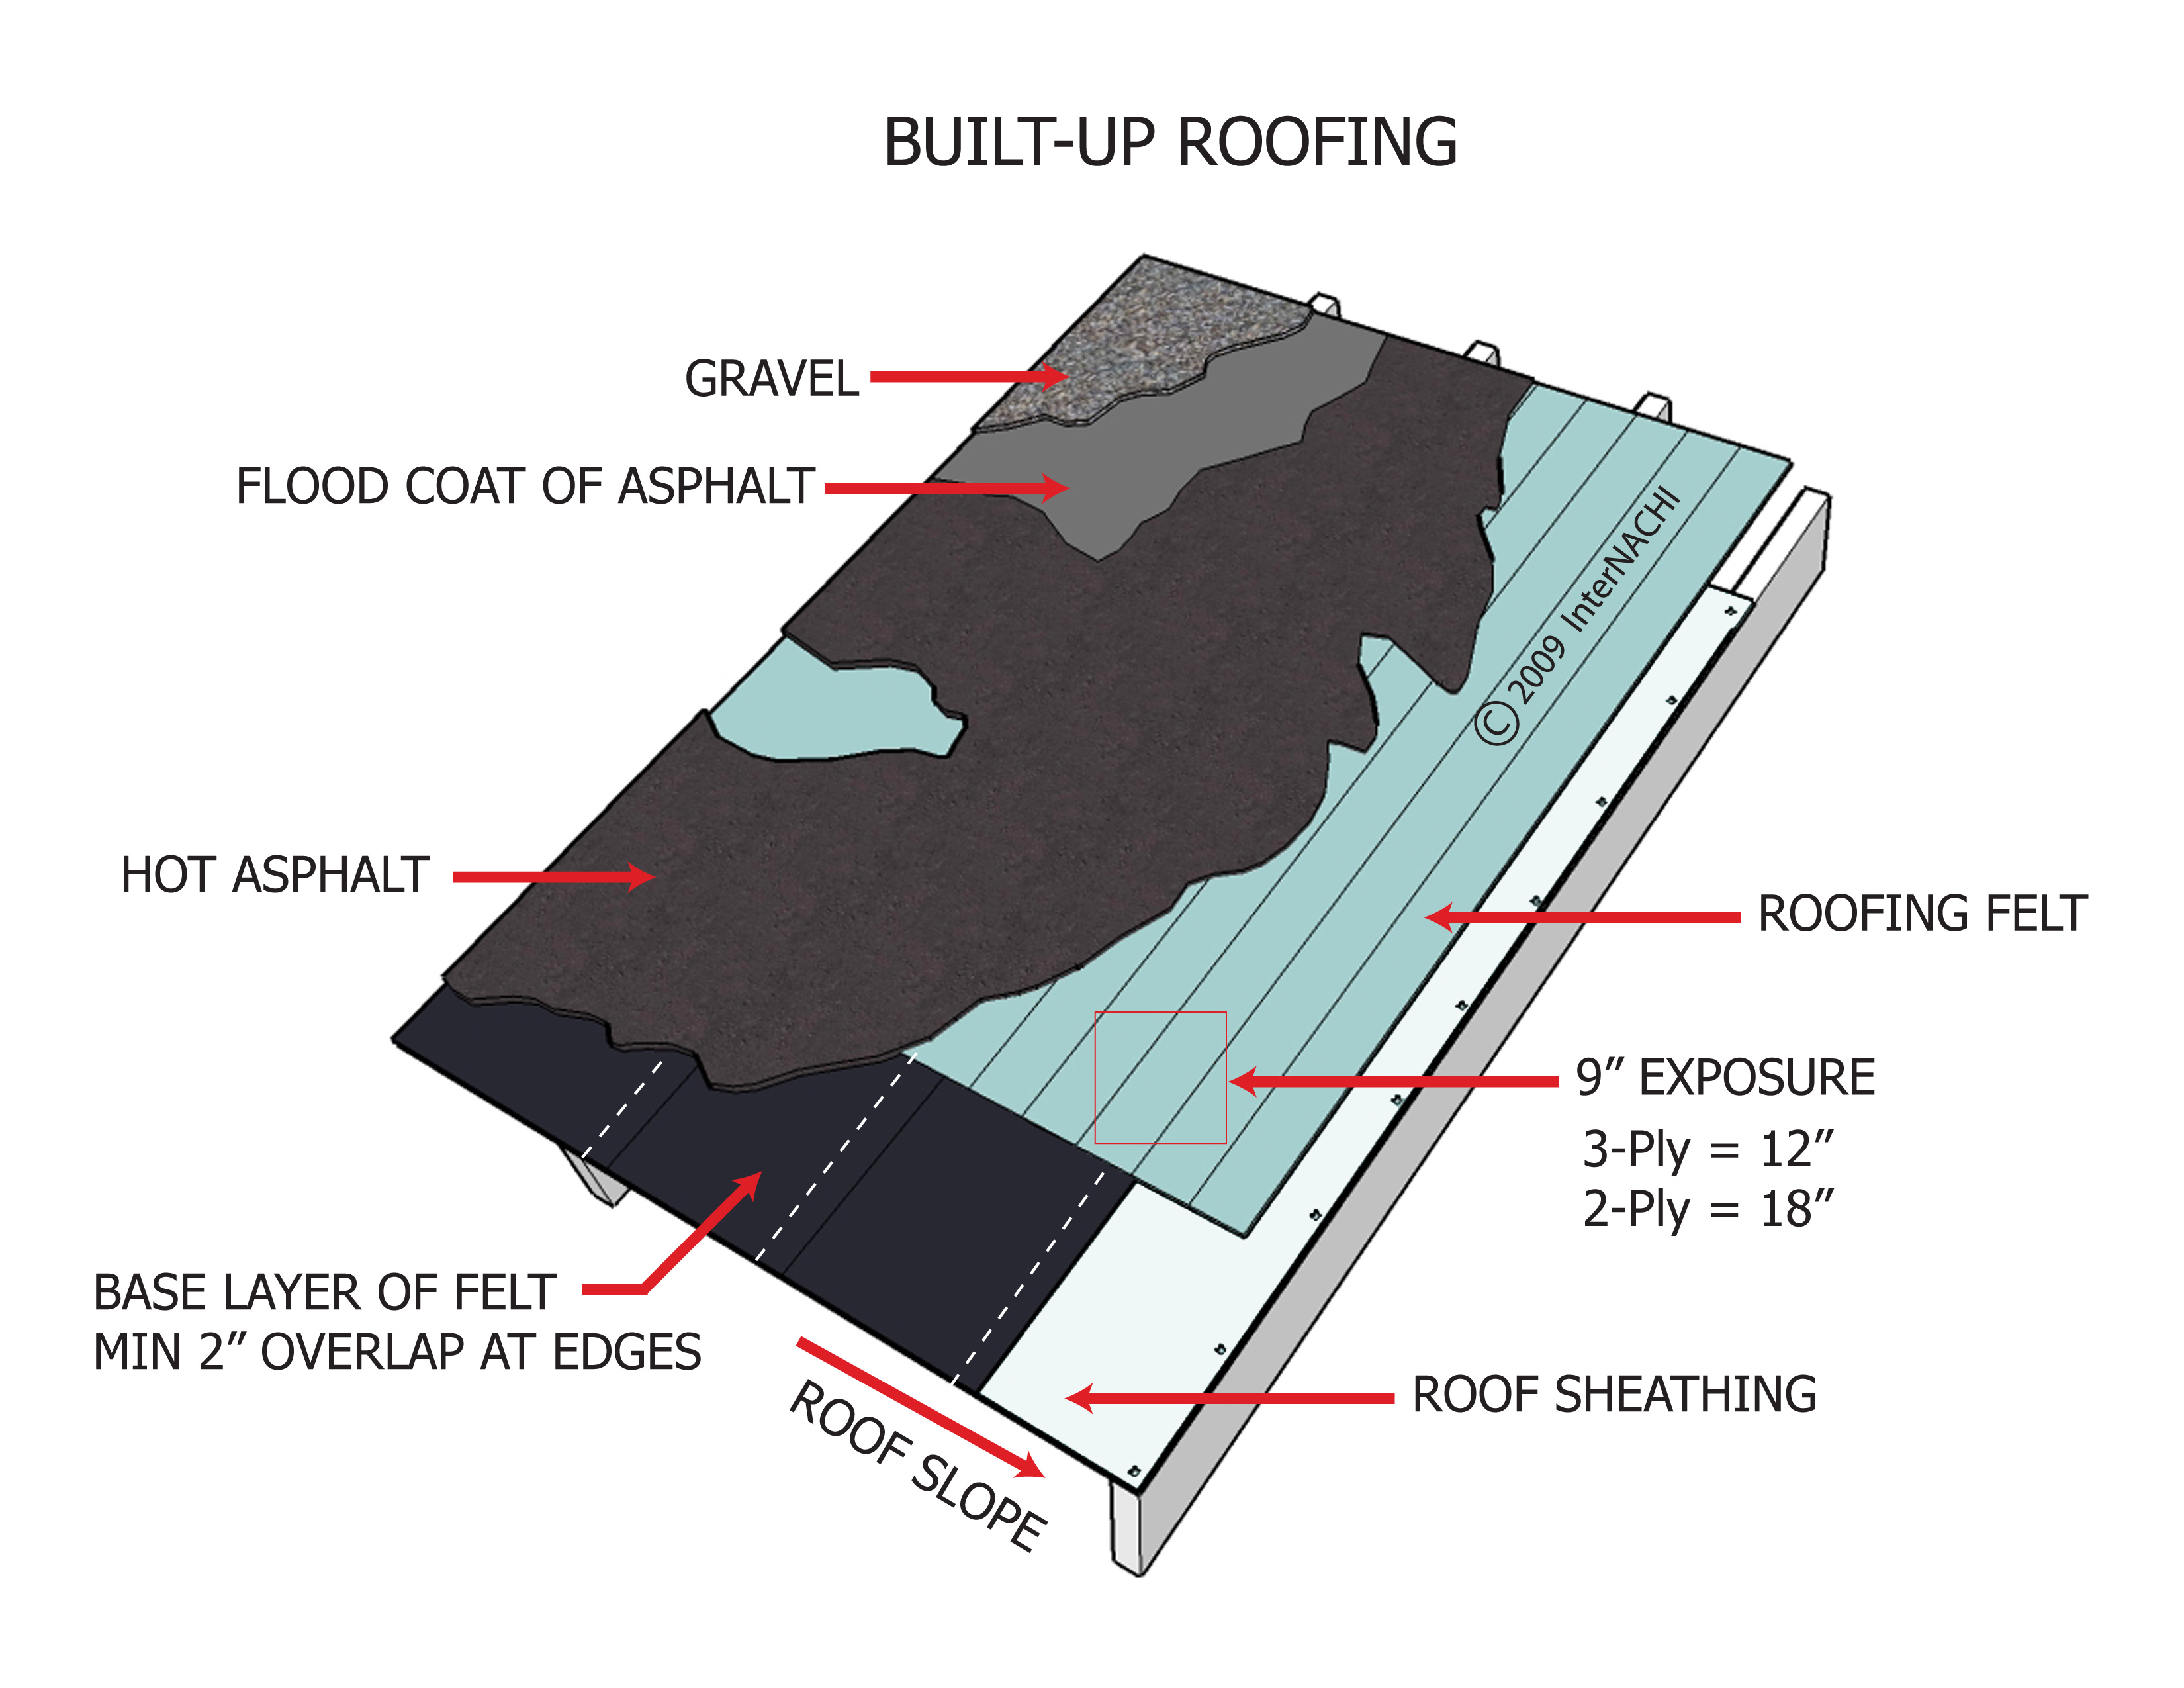 Internachi Inspection Graphics Library Roofing 187 Built Up